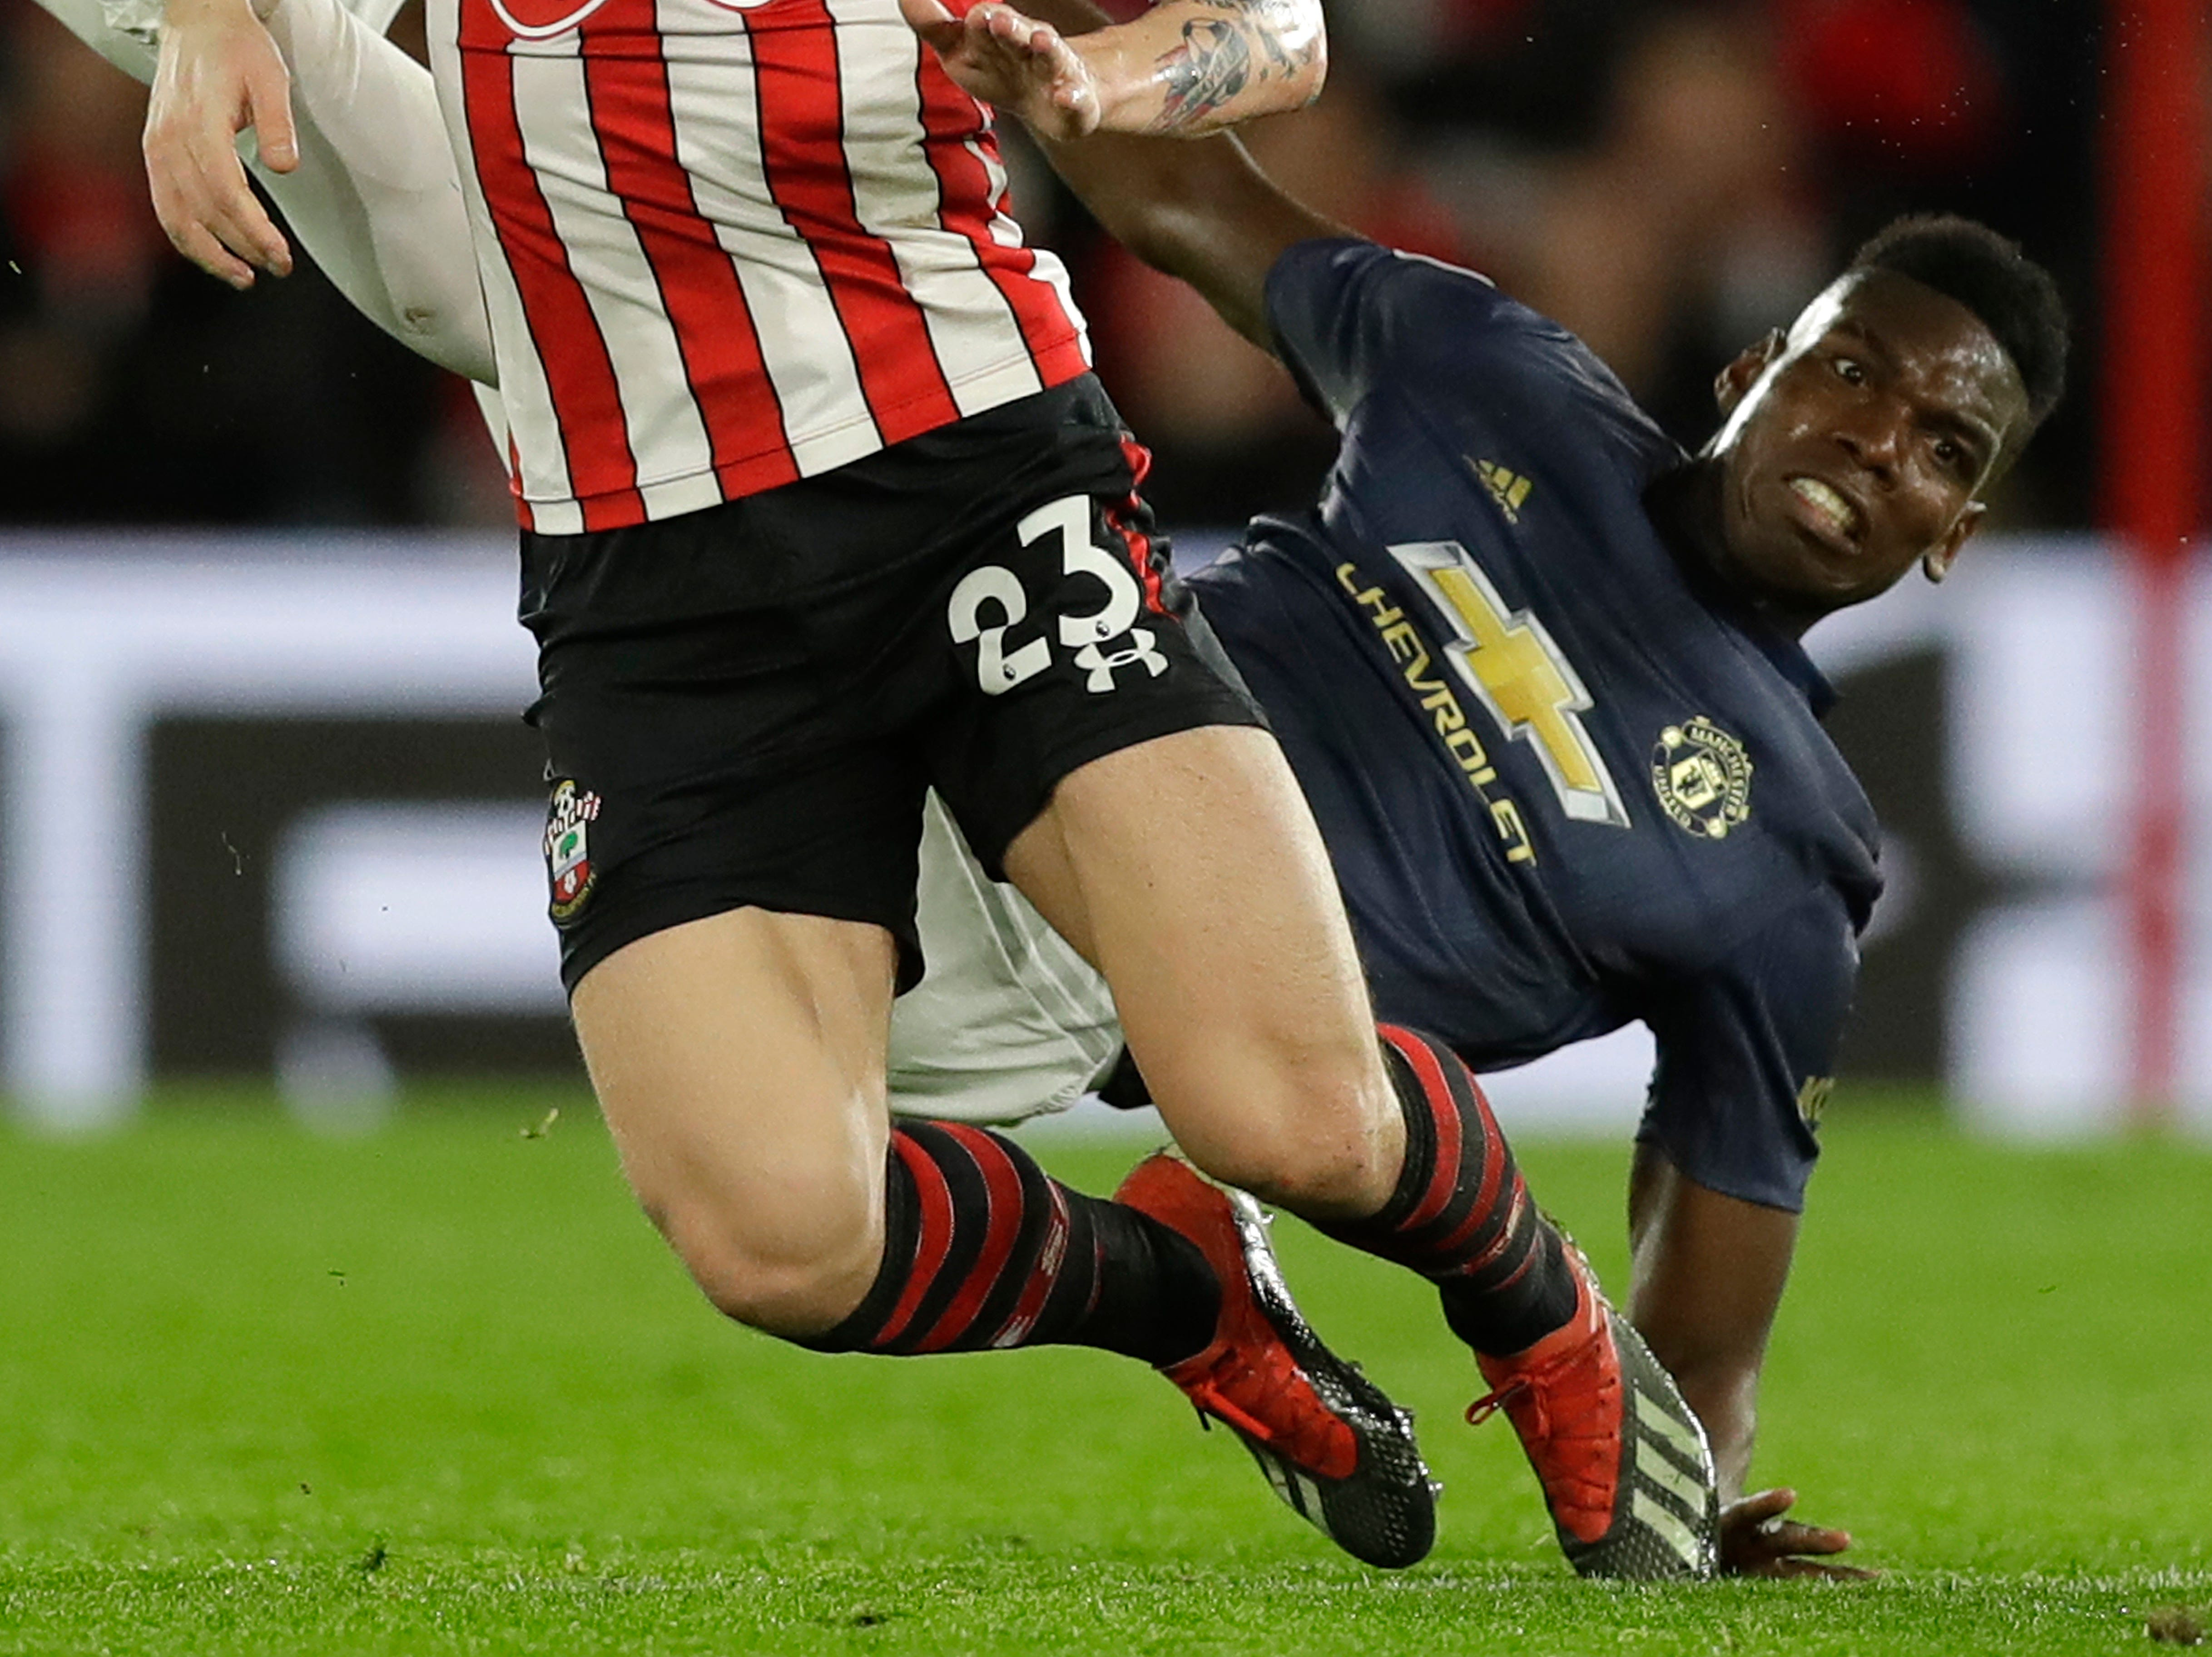 Manchester United's Paul Pogba, right, fights for the ball with Southampton's Pierre-Emile Hojbjerg.